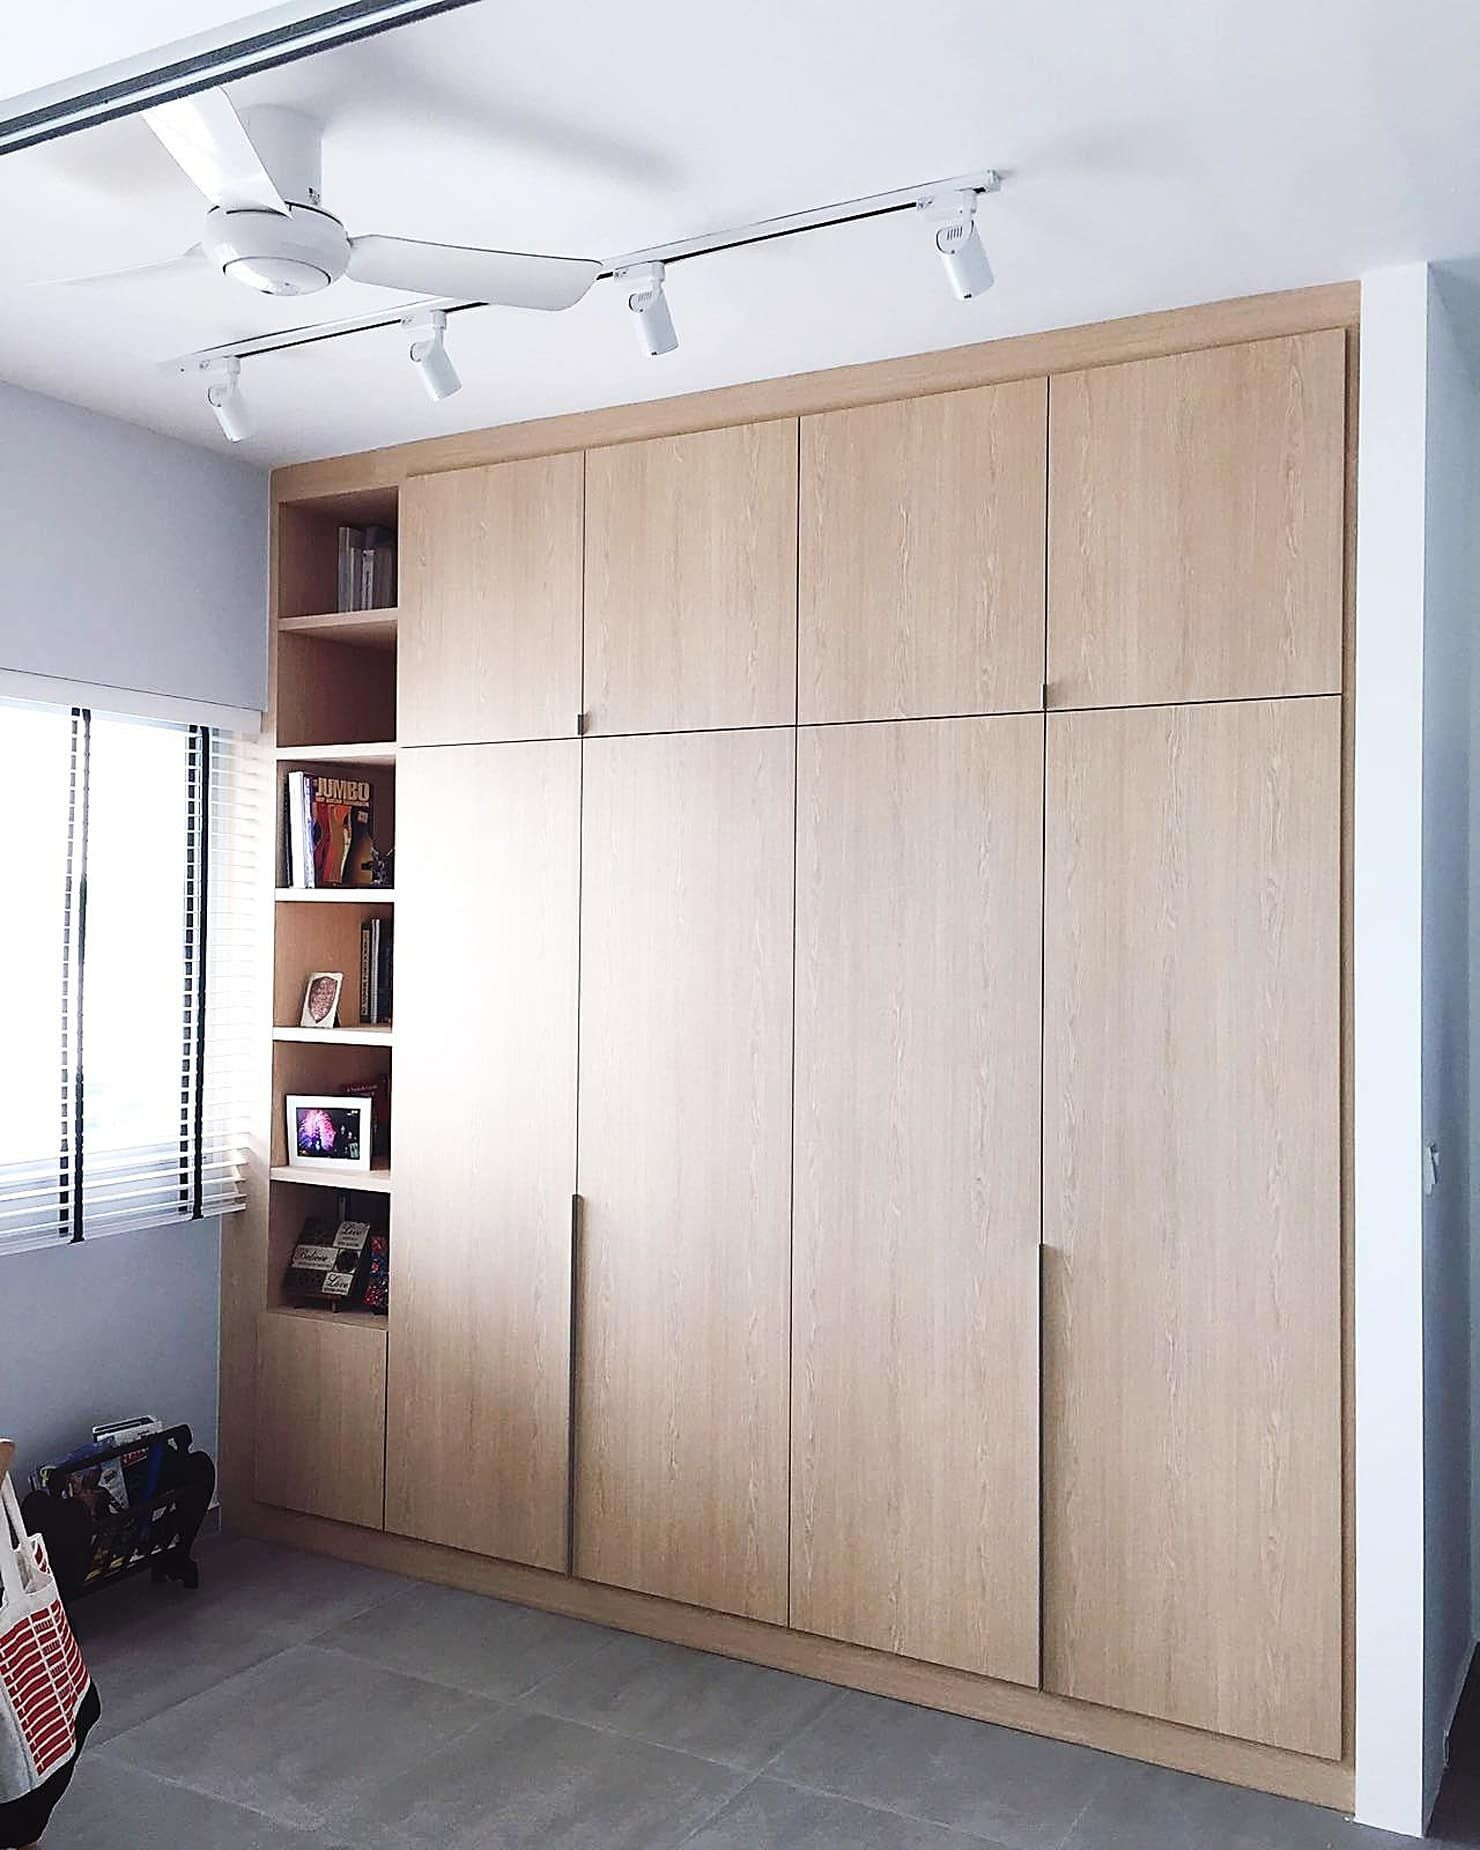 Full Height Wardrobe With Open Cabinet Scandinavian Style Dressing Room By Singapore Carpentry Pte Ltd Scandinavian Homify Small Dressing Rooms Dressing Room Design Scandinavian Interior Bedroom